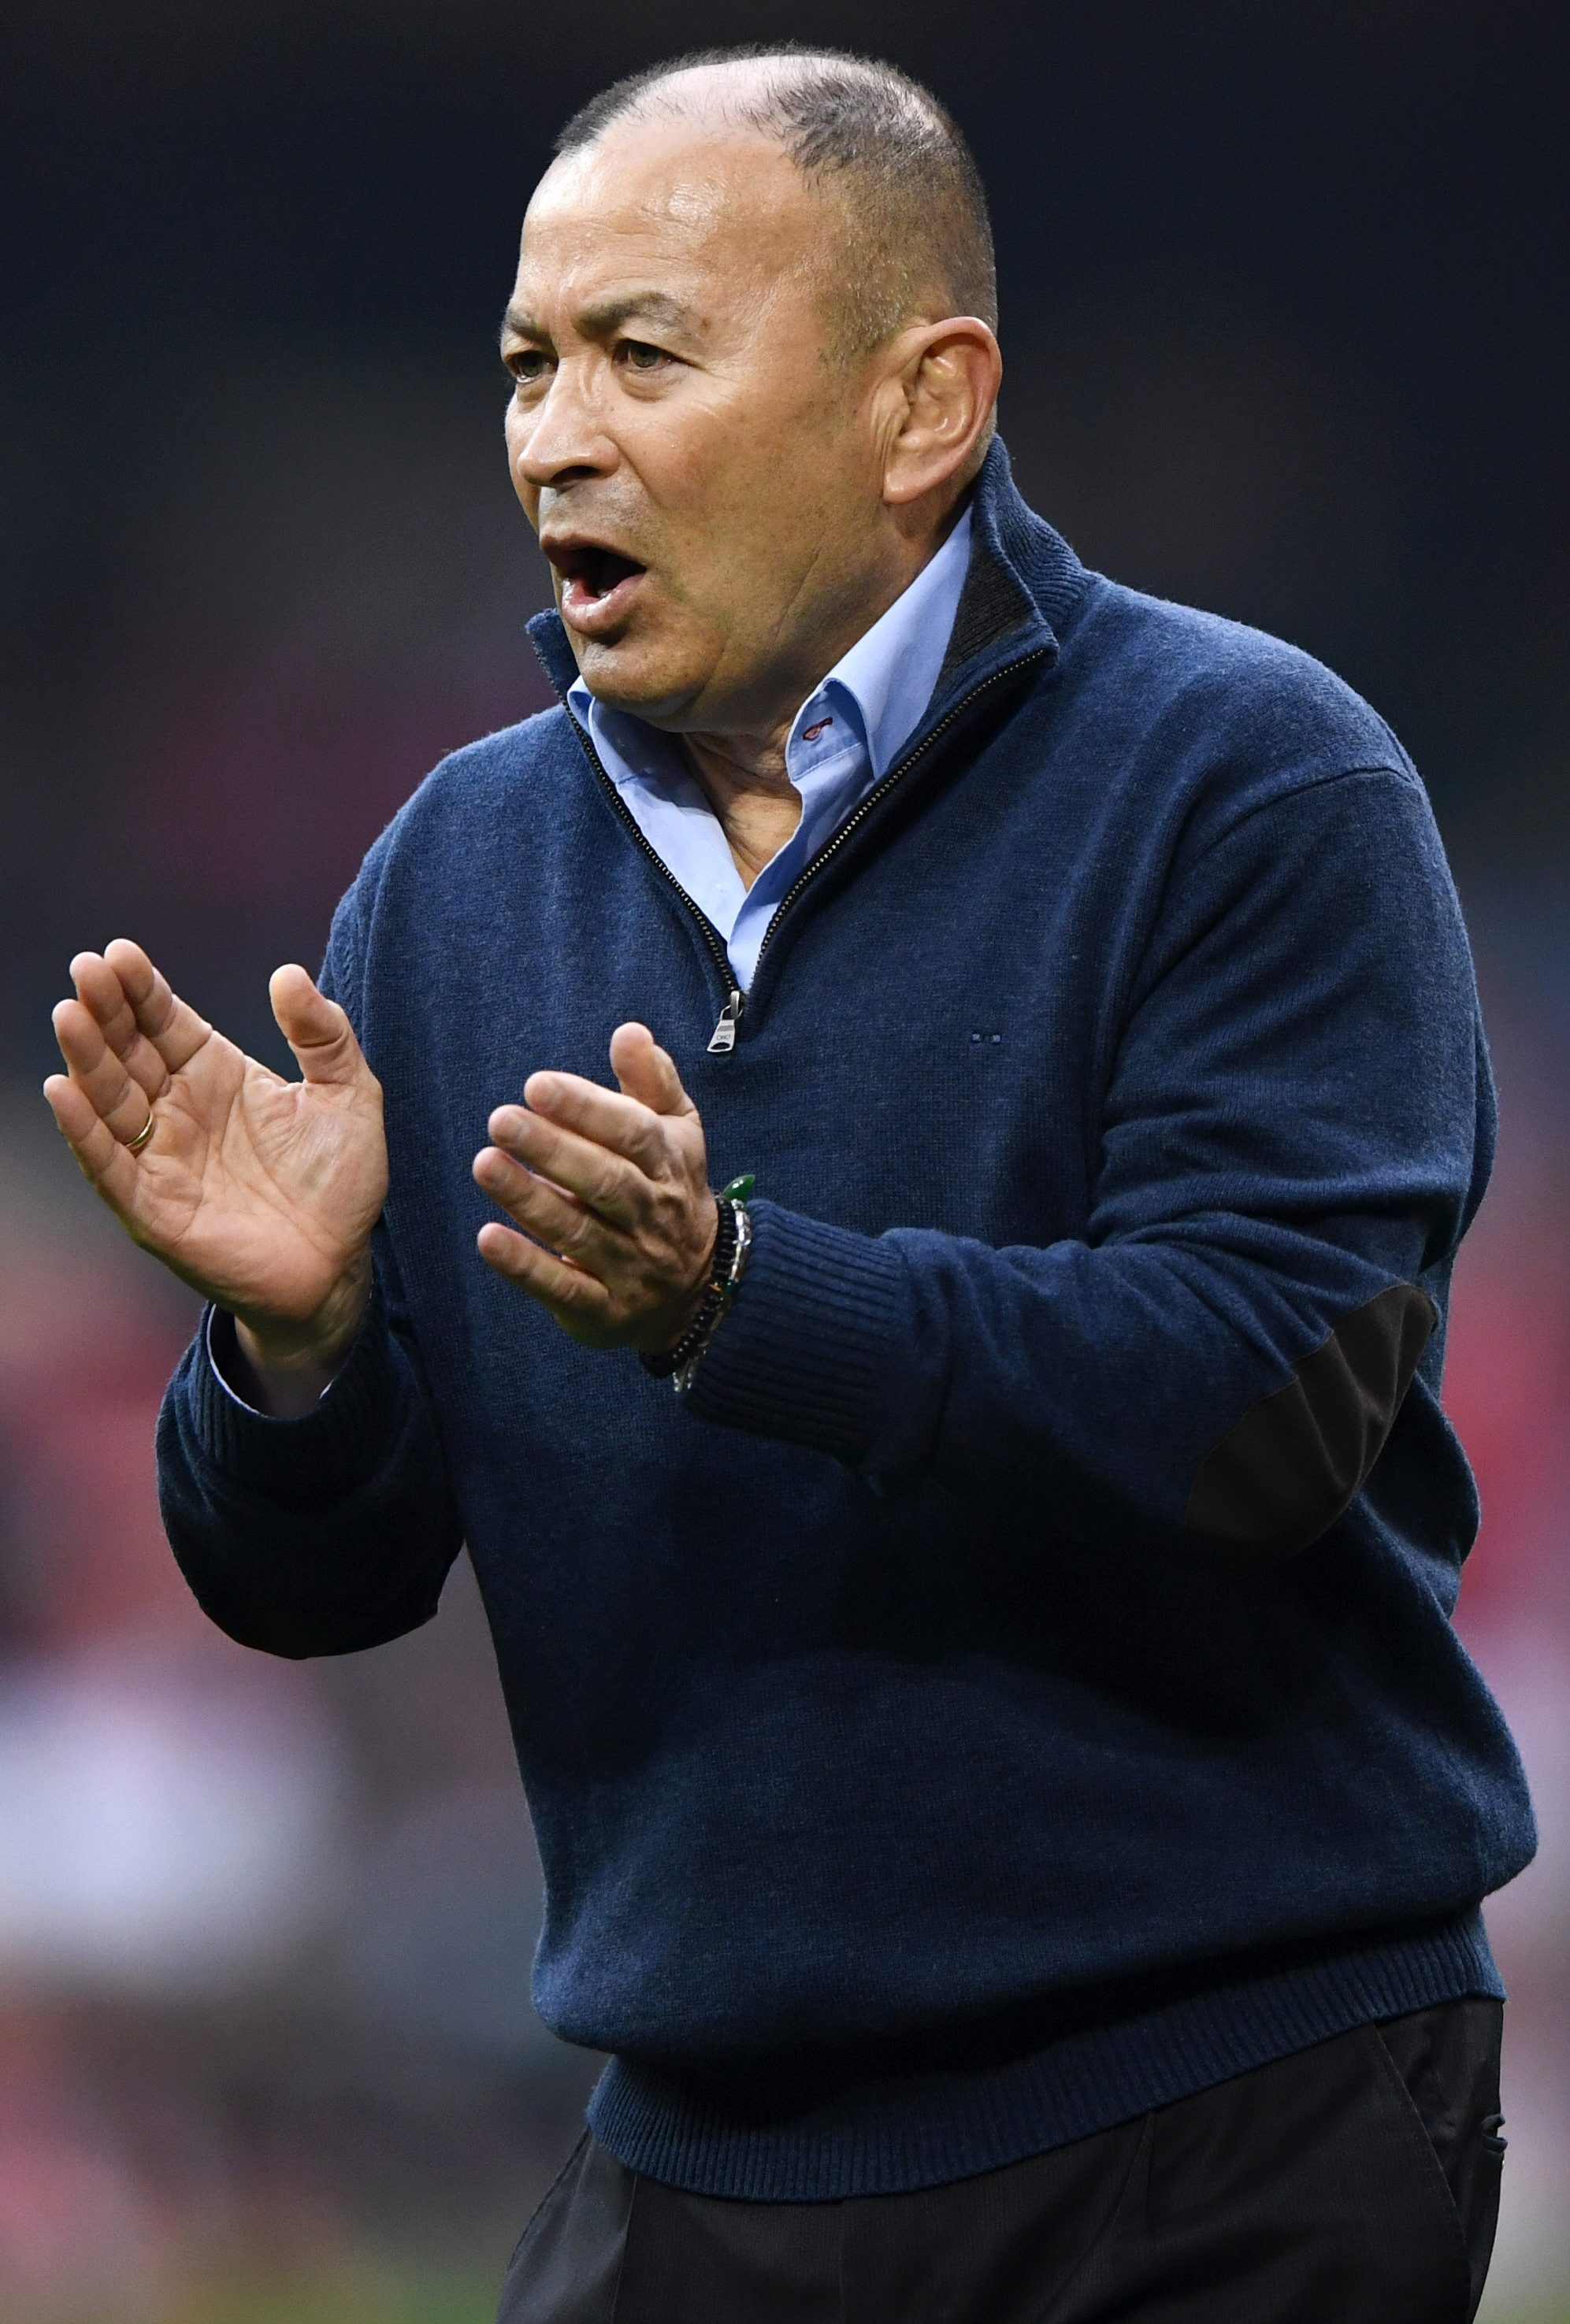 Eddie Jones is desperate to get help for the England rugby team to tackle their mental frailties, especially after an amazing collapse in a 38-38 draw with Scotland